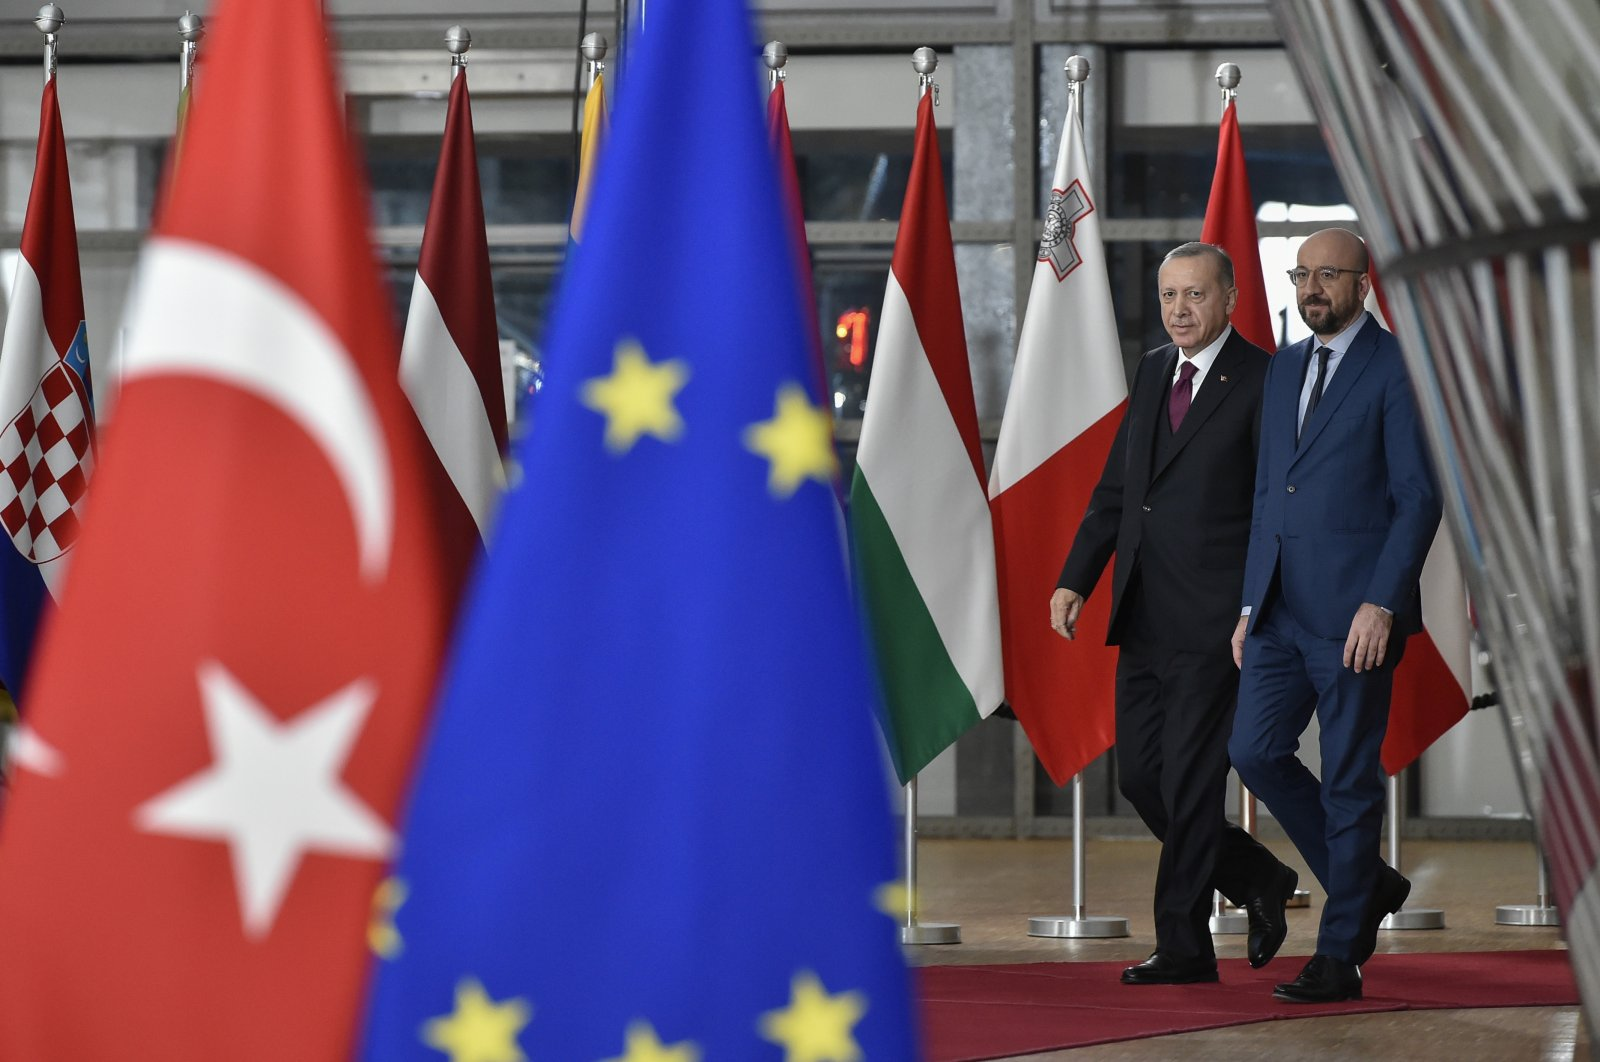 President Recep Tayyip Erdoğan (L) walks with European Council President Charles Michel as he arrives at the European Council building in Brussels, March 9, 2020. (AP)